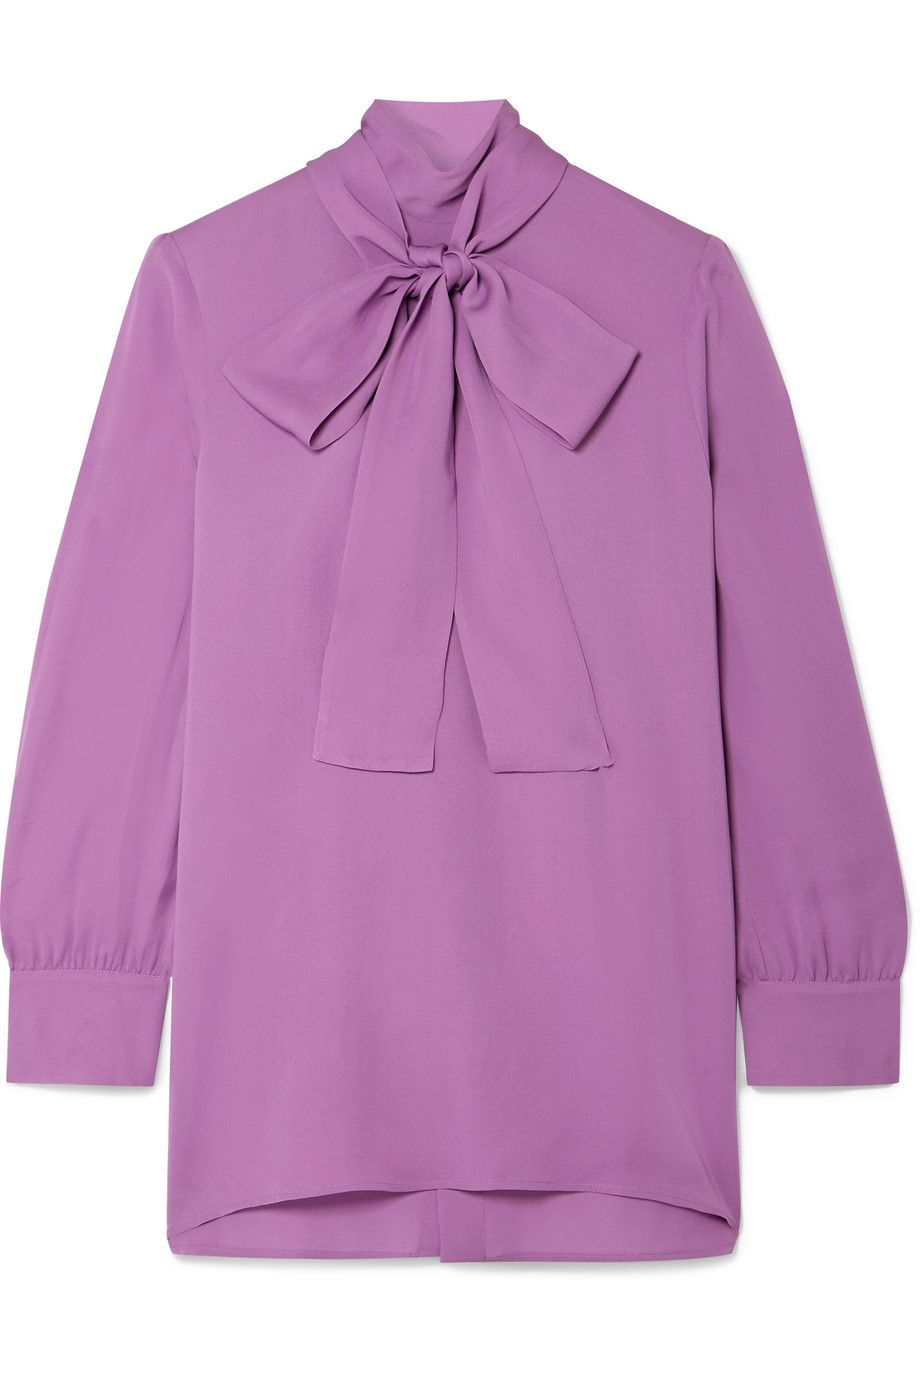 f5158c774b436 Kate Middleton s Gucci Bow Blouse and High-Waisted Trousers Are ...